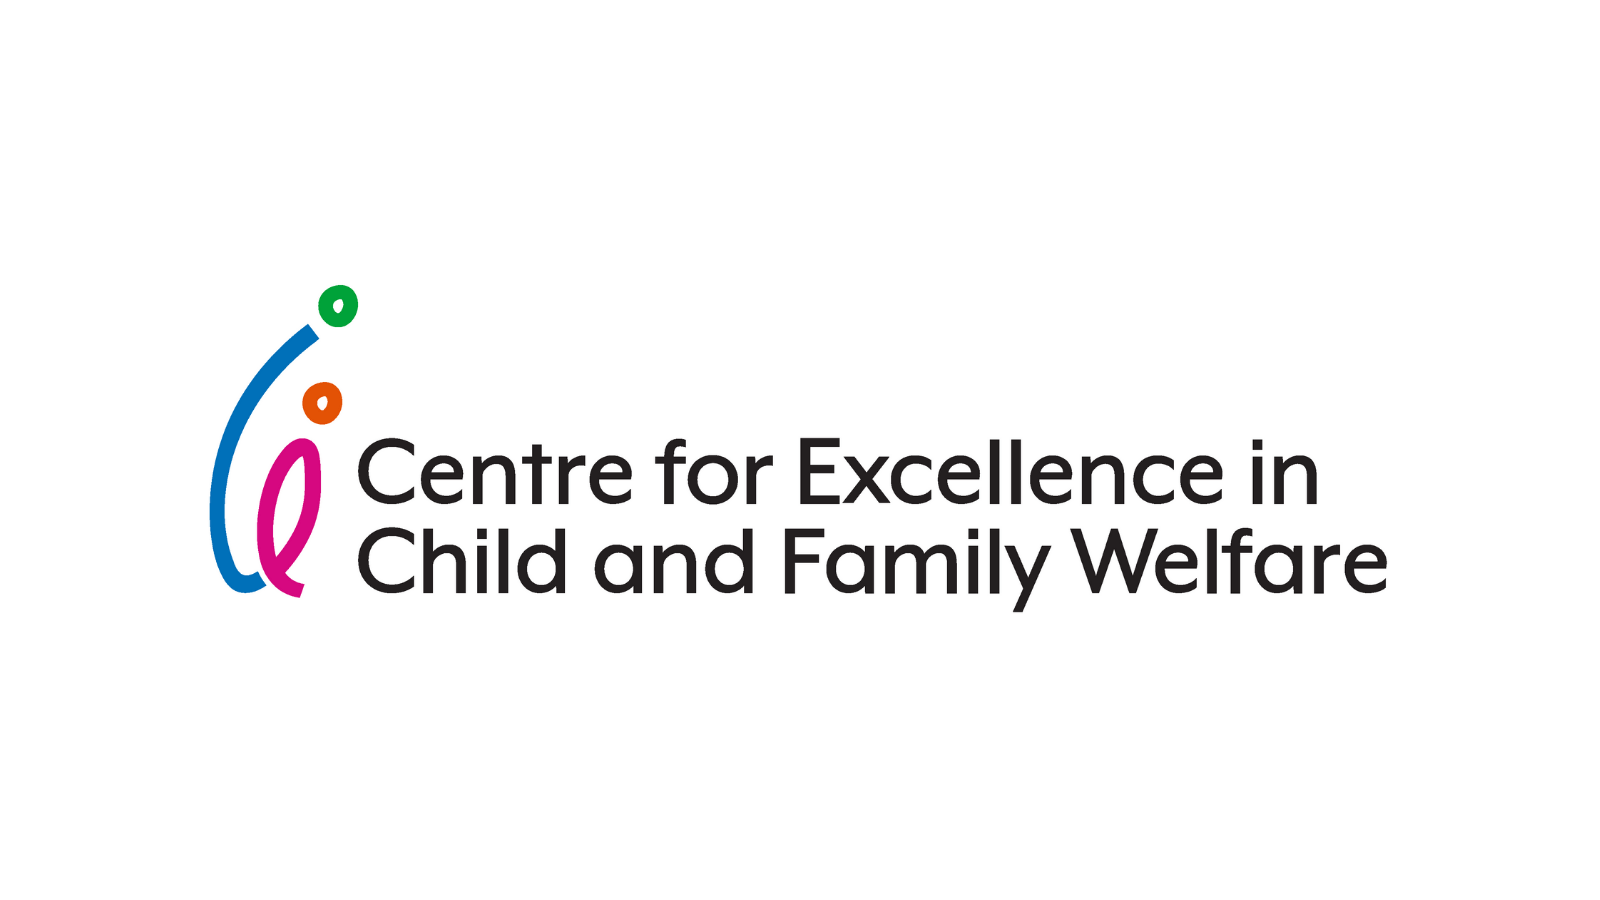 Centre for Excellence in Child and Family Welfare Appoints New Chair